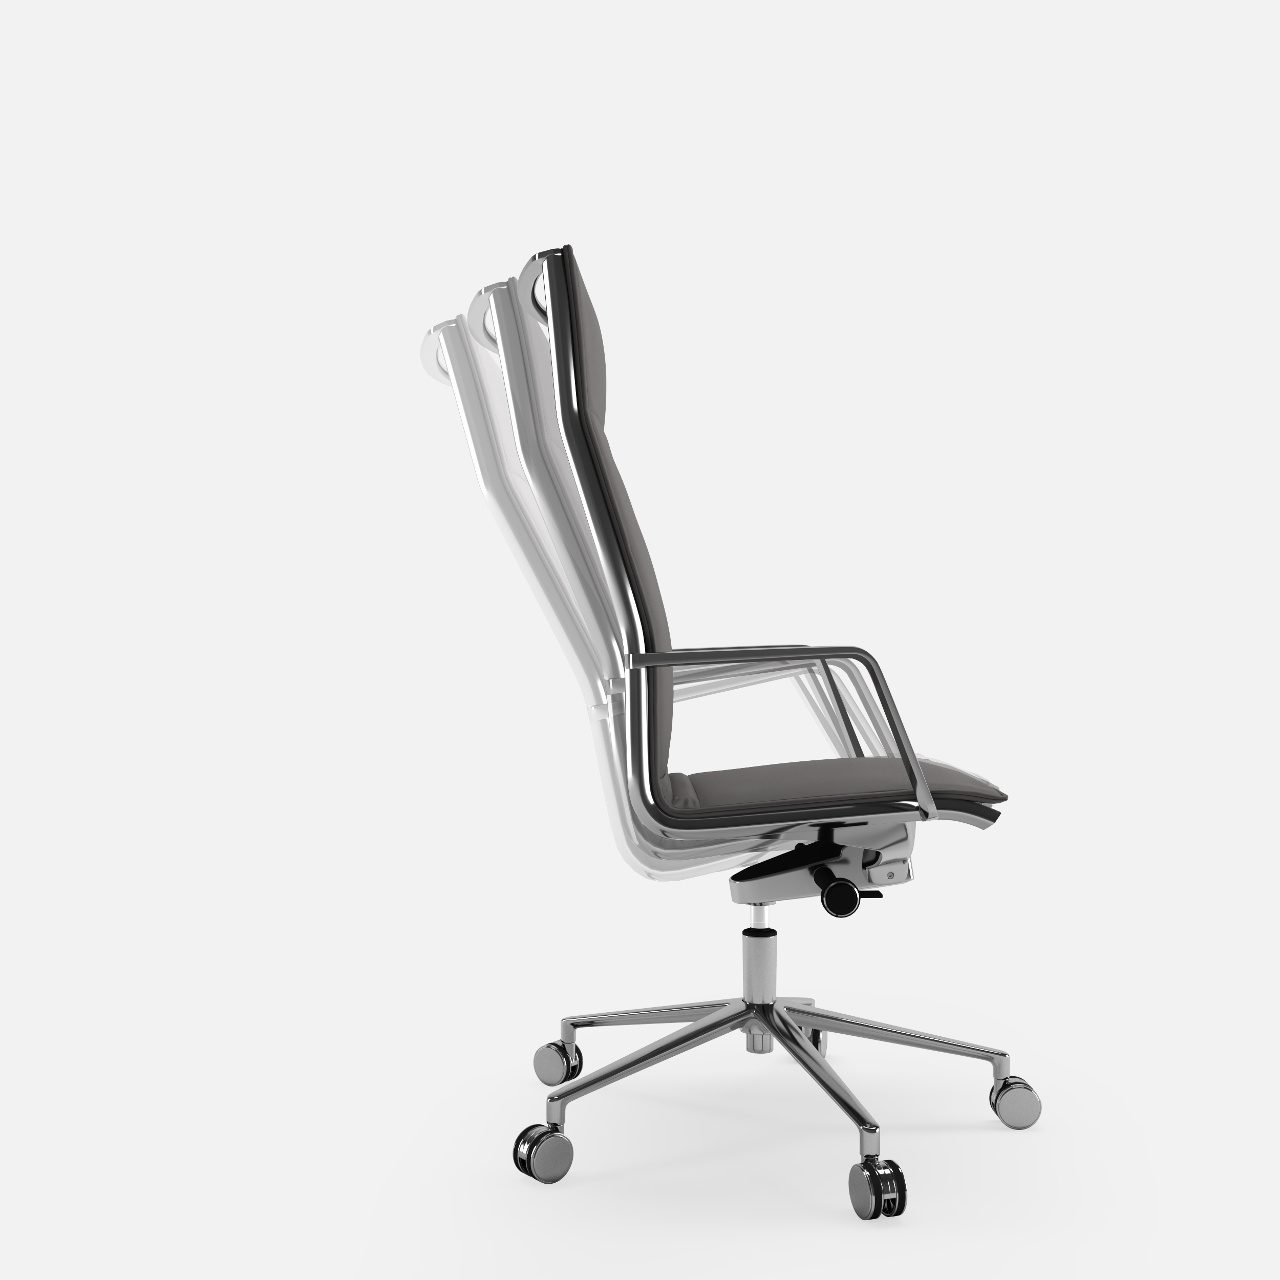 09S_Estel_Comfort&Relax_Office-chair&contract-conference_Aluminia